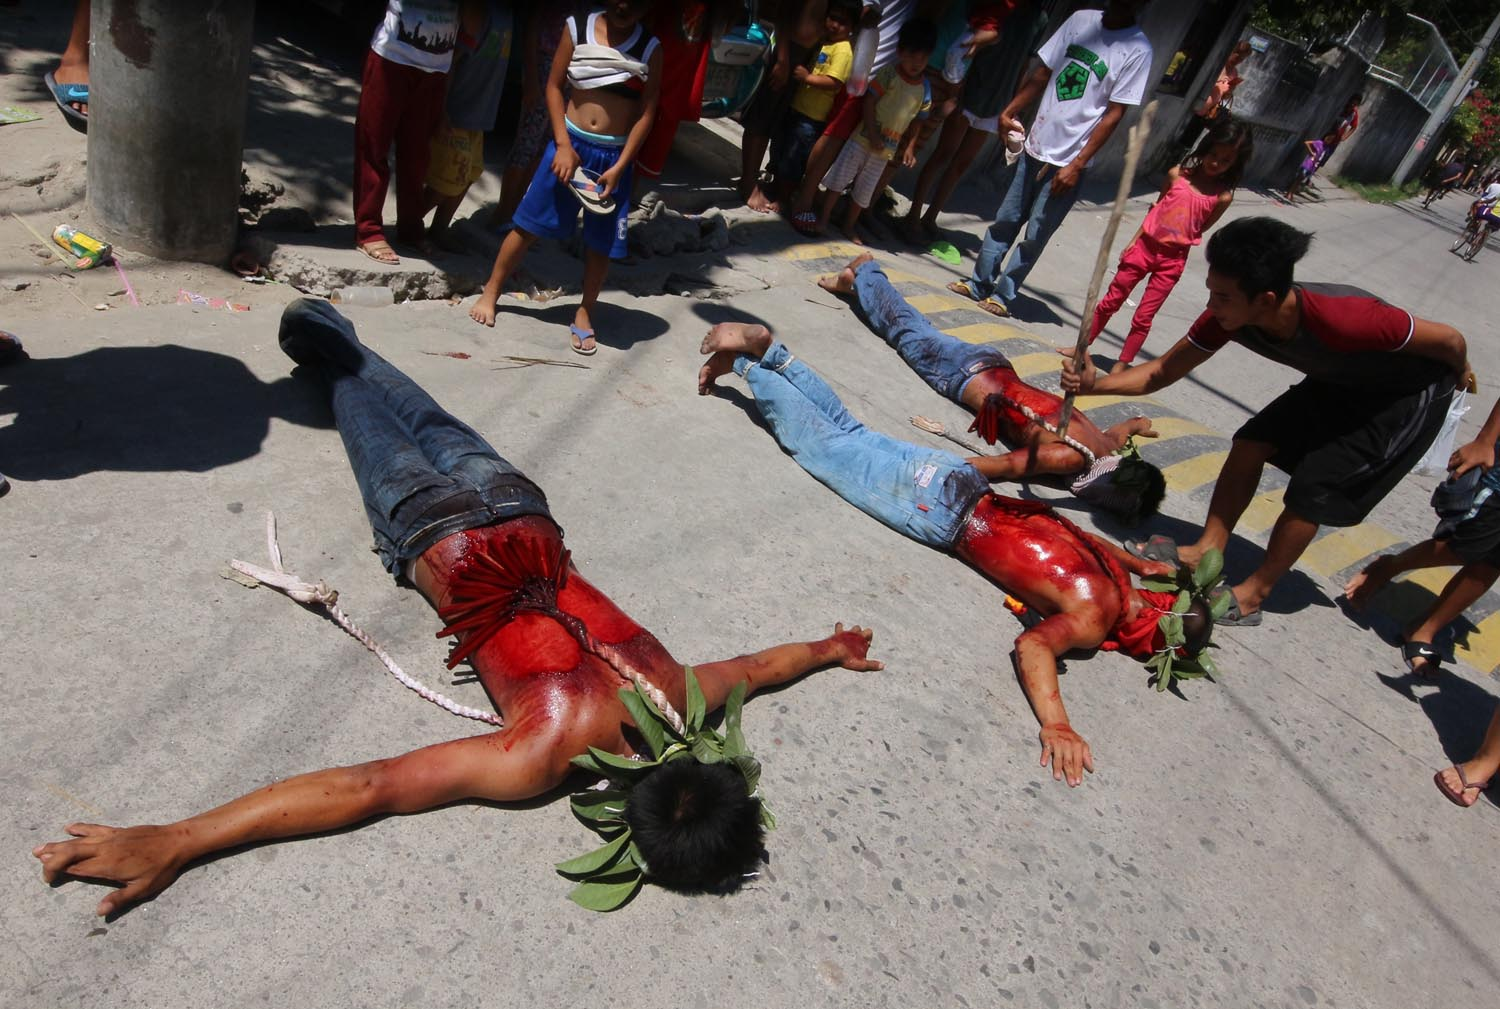 OFFERING. A man whips a devotee lying on the ground. Photo by Darren Langit